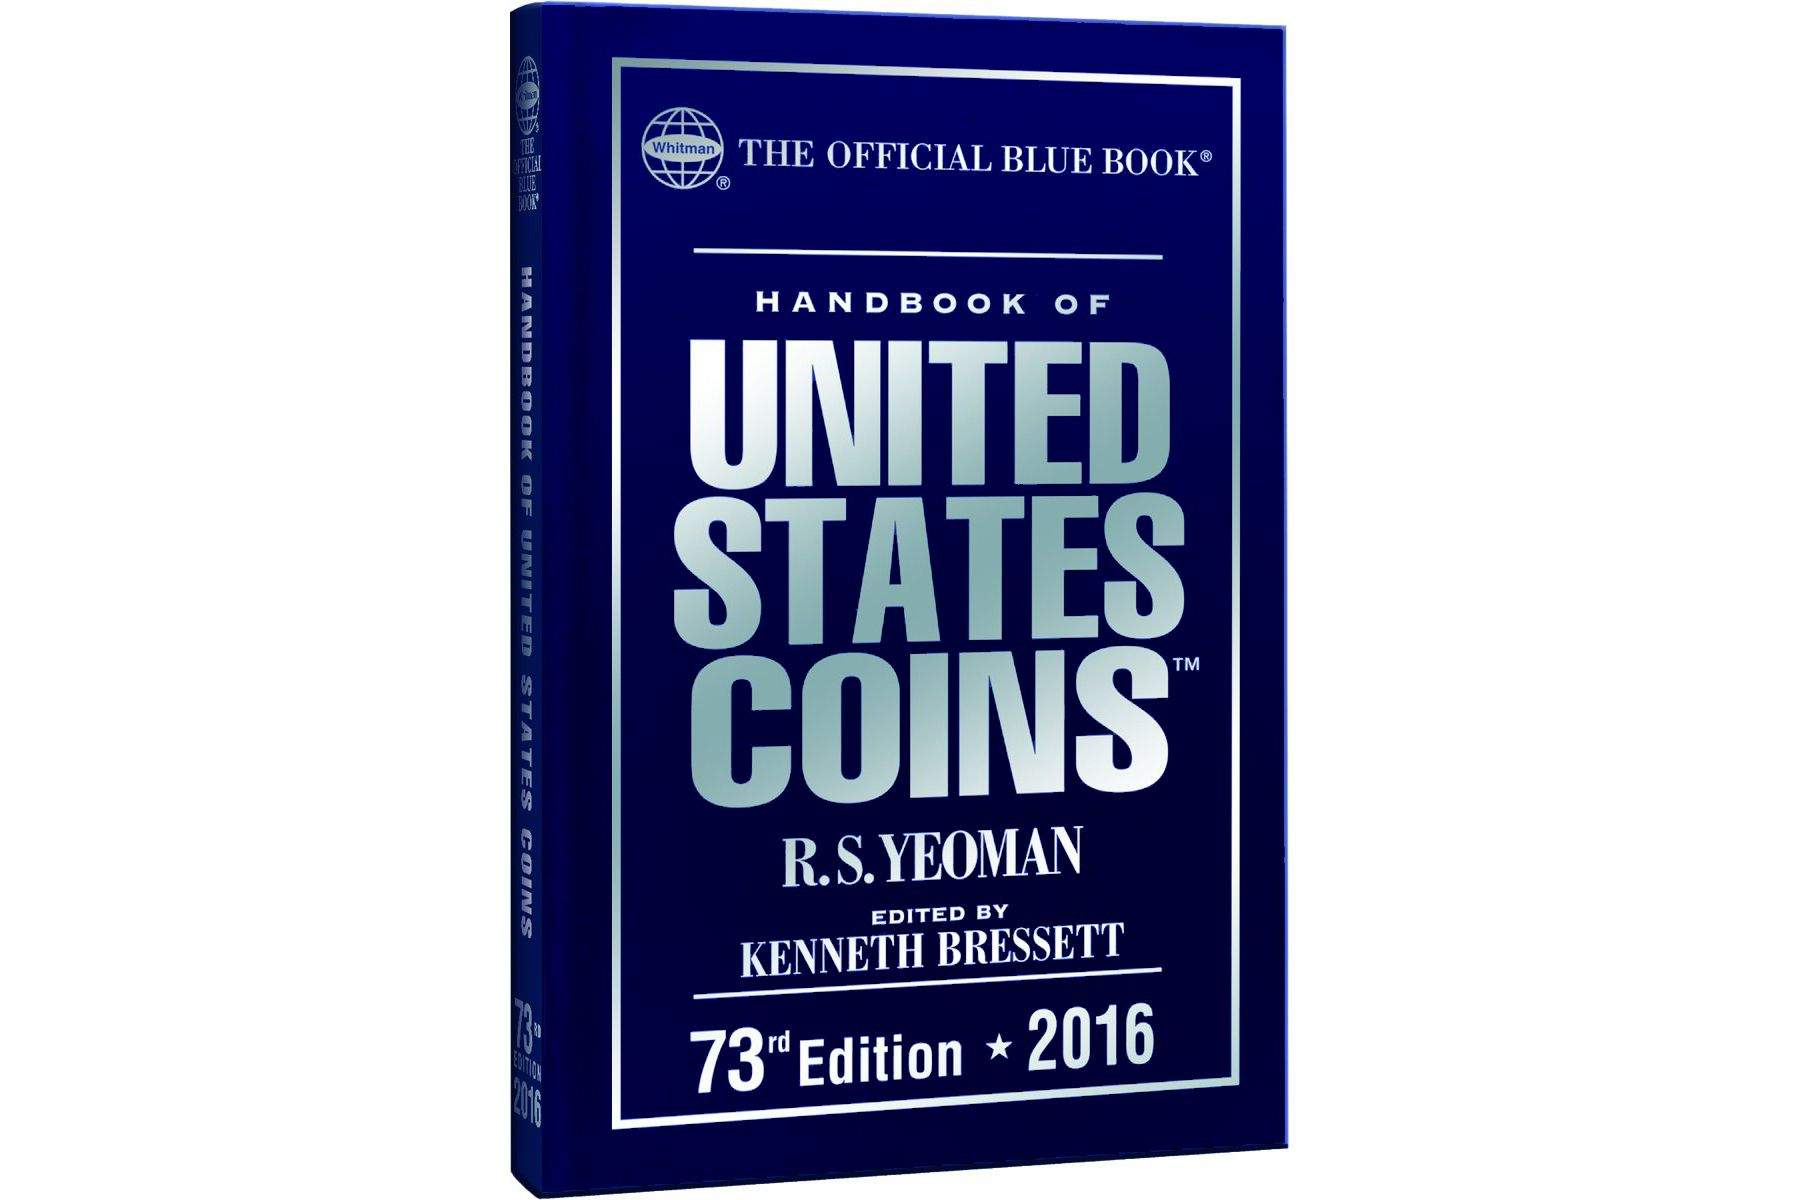 The Blue Book - Handbook of United States Coins - 2016